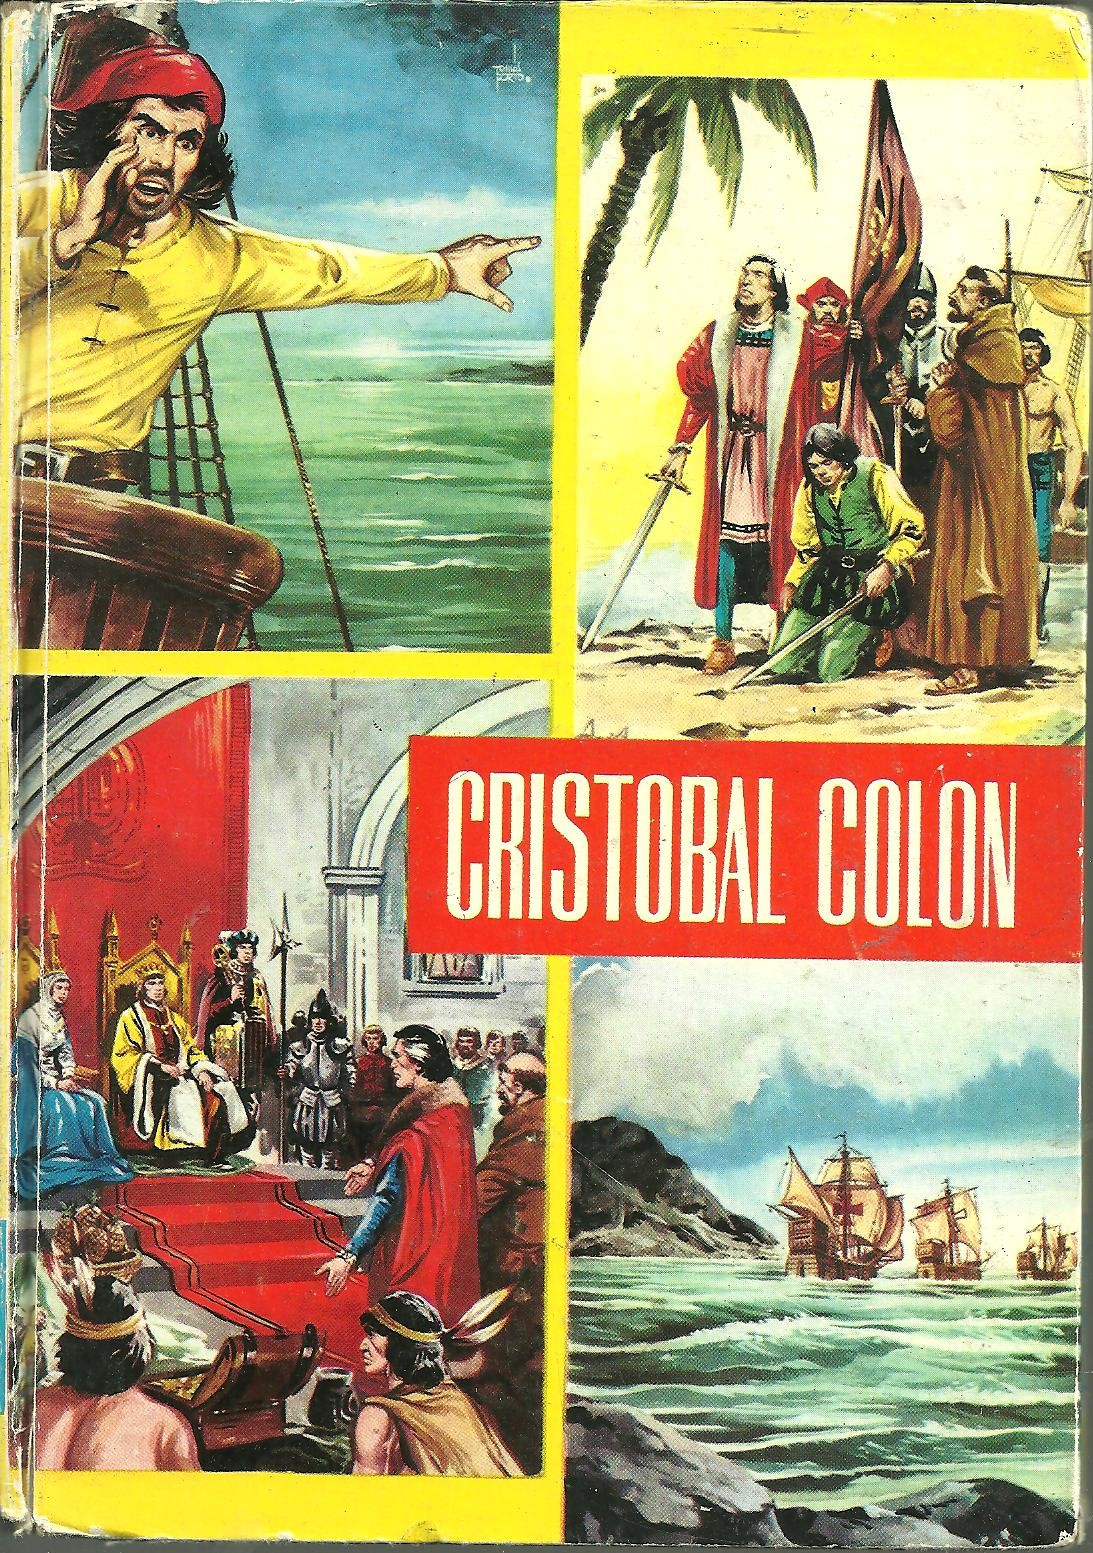 CRISTOBAL COLON.